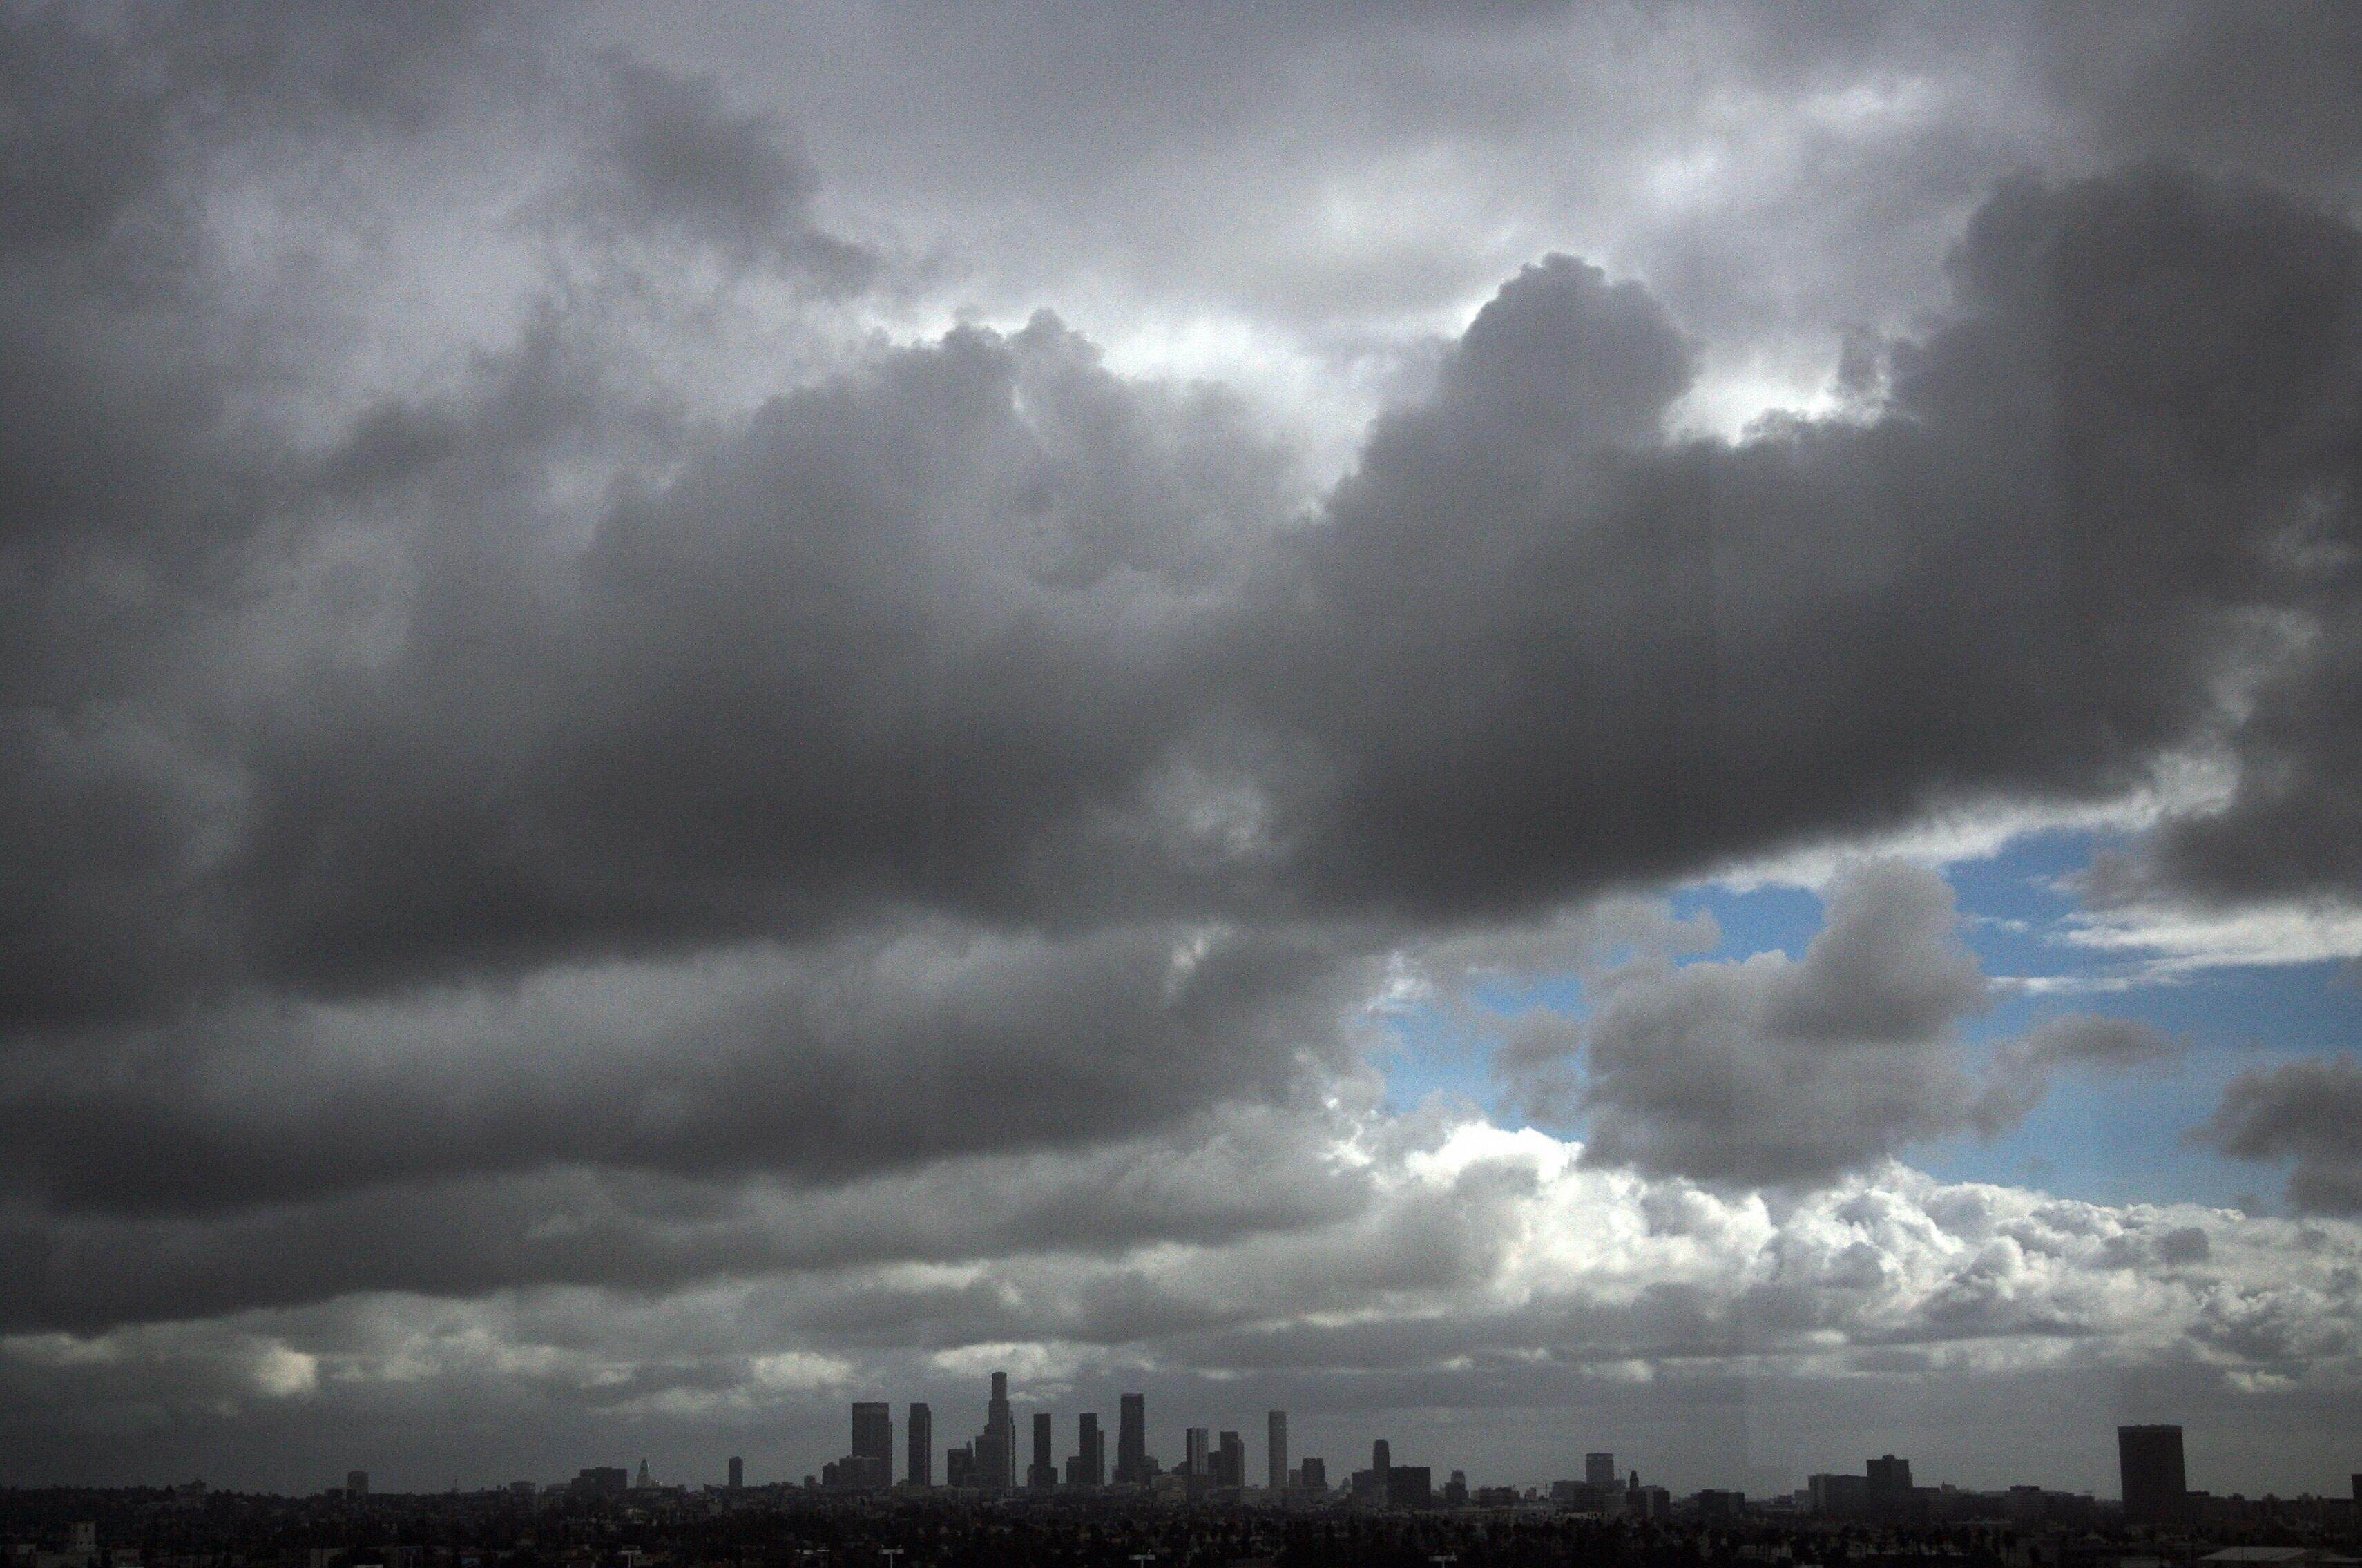 Storm clouds pass over the downtown Los Angeles skyline as the sun breaks through the thick clouds early  07 December 2007. Forecasters say urban areas can expect an inch of rain. AFP PHOTO GABRIEL BOUYS (Photo credit should read GABRIEL BOUYS/AFP/Getty I